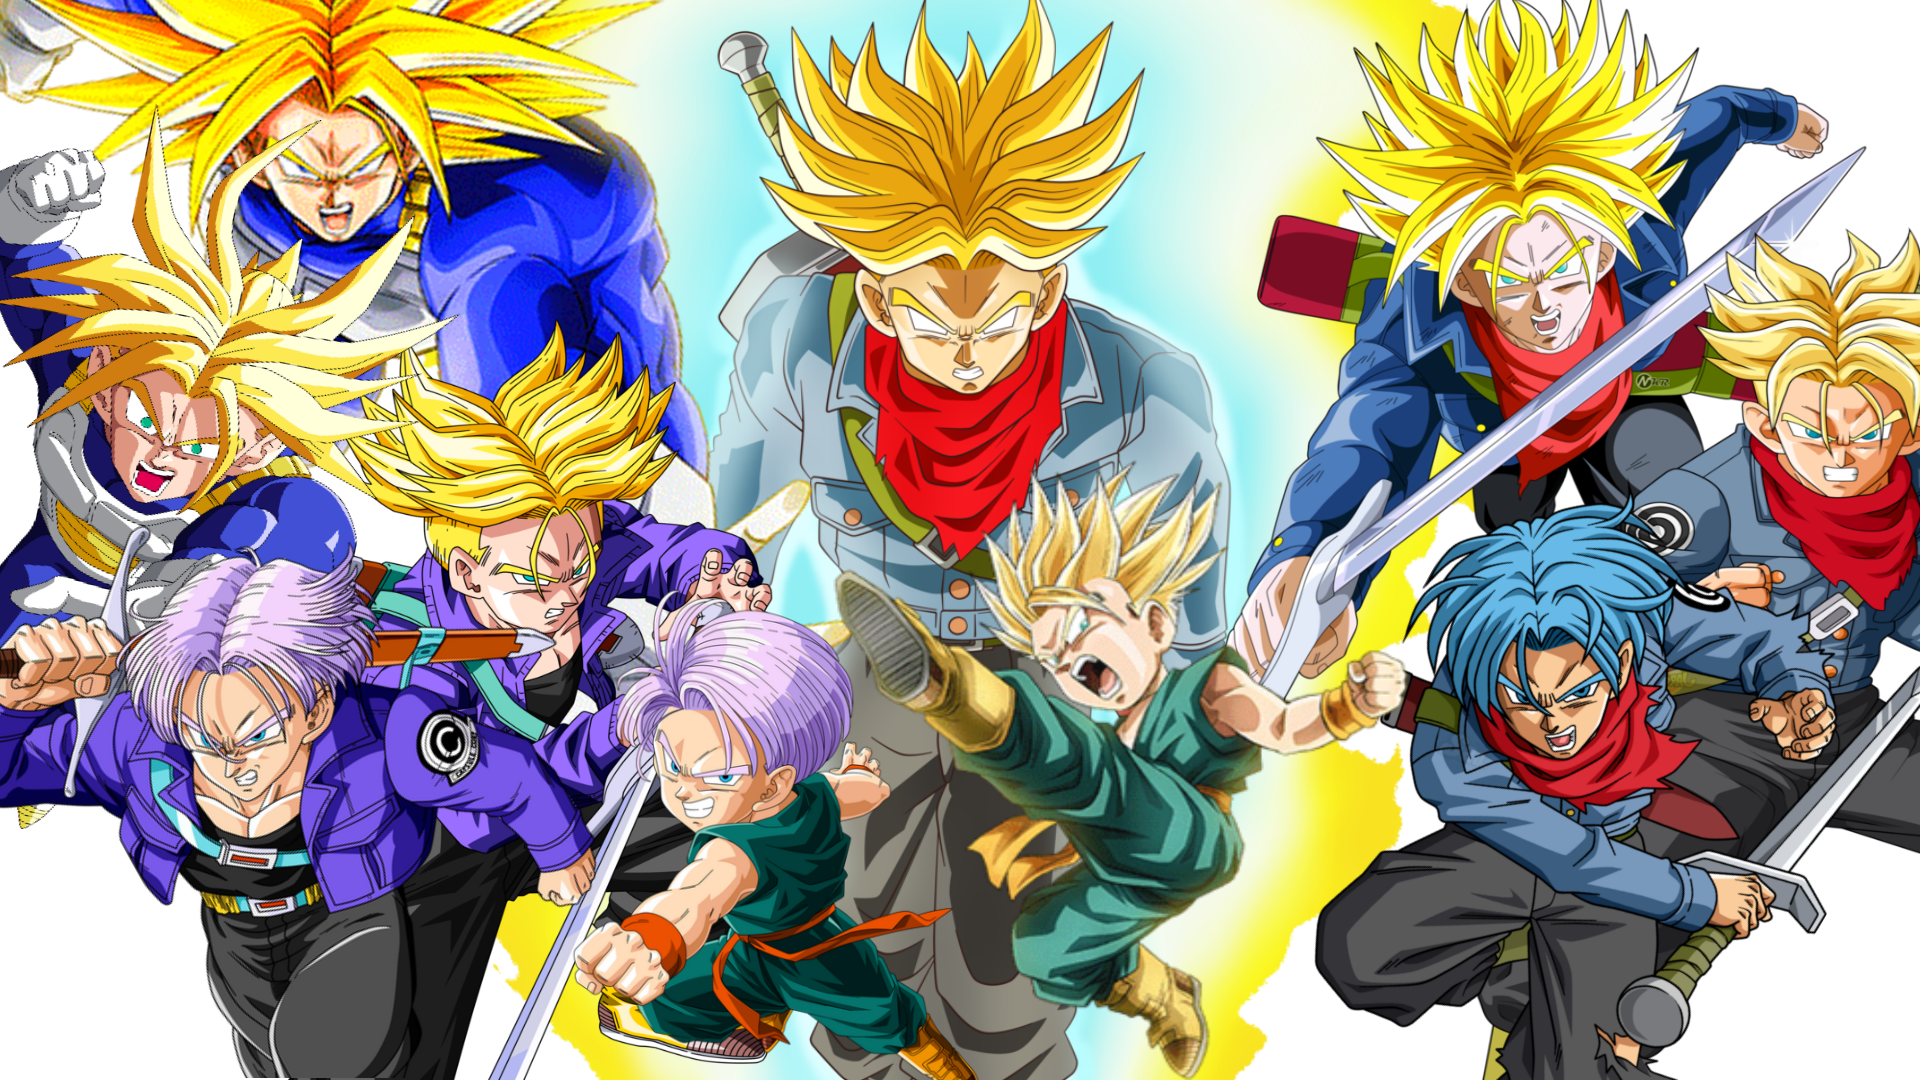 dragon ball dragon ball z dragon ball super trunks forms